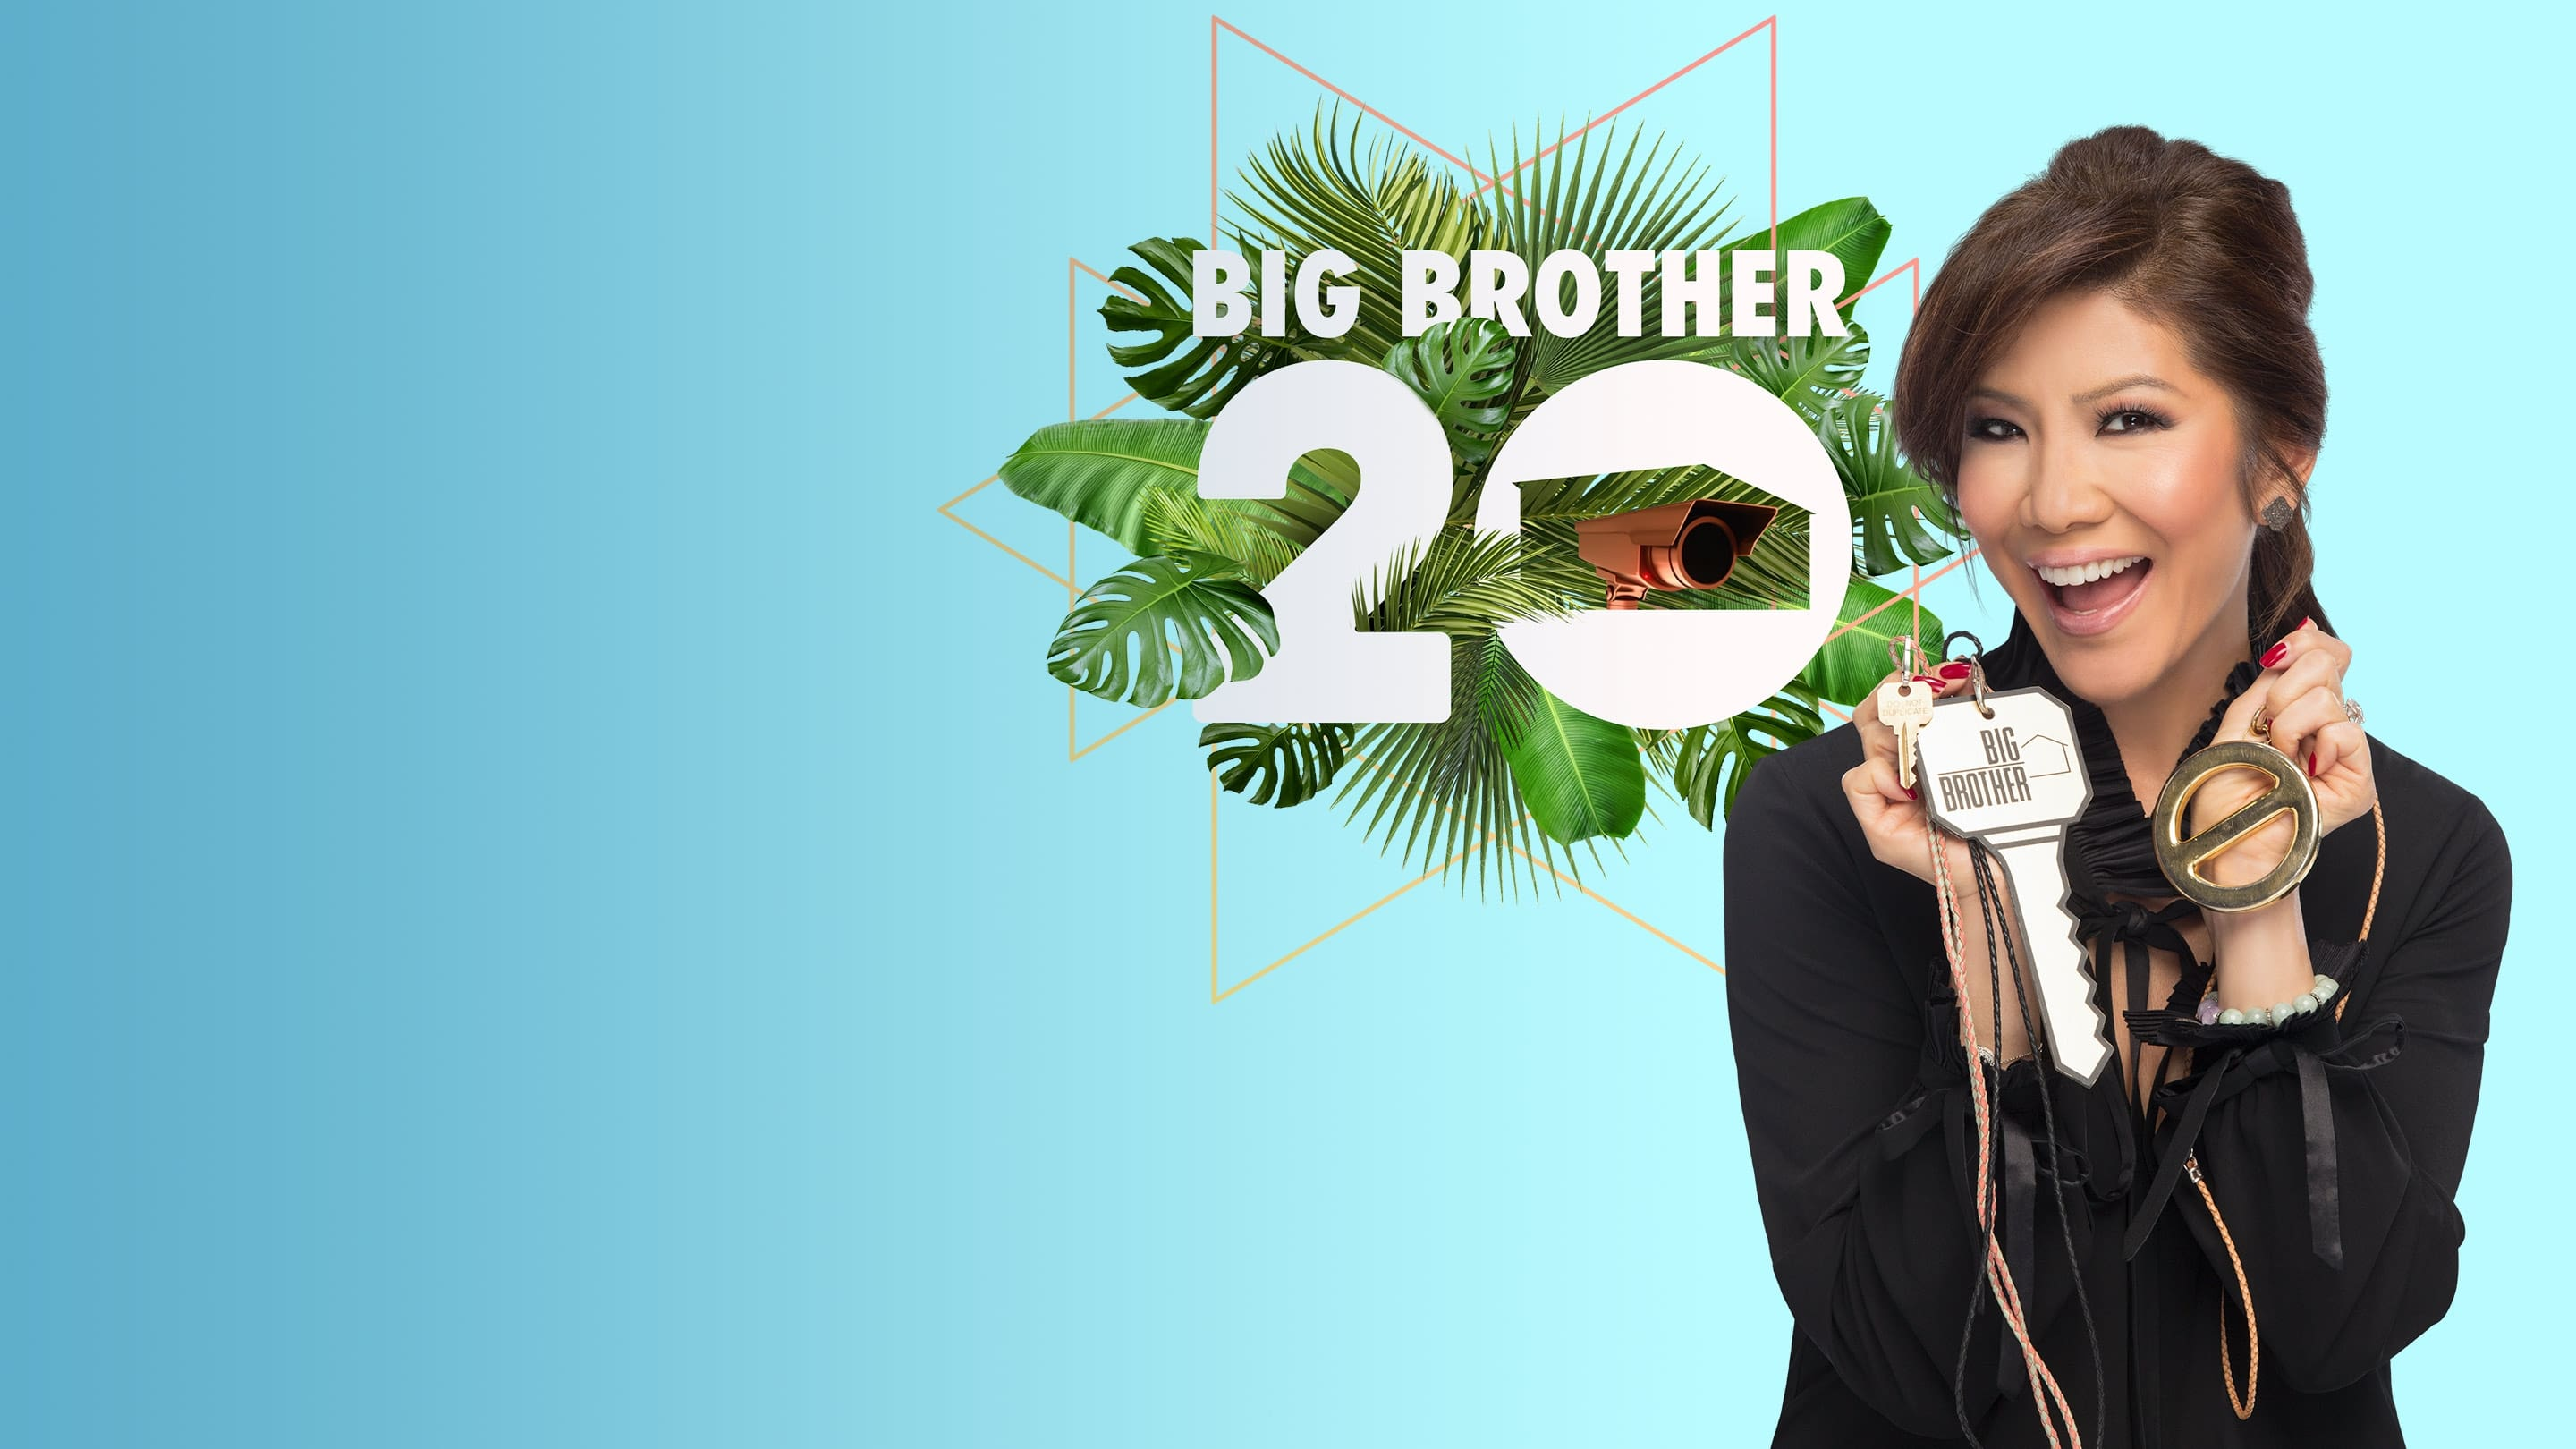 Big Brother - Season 20